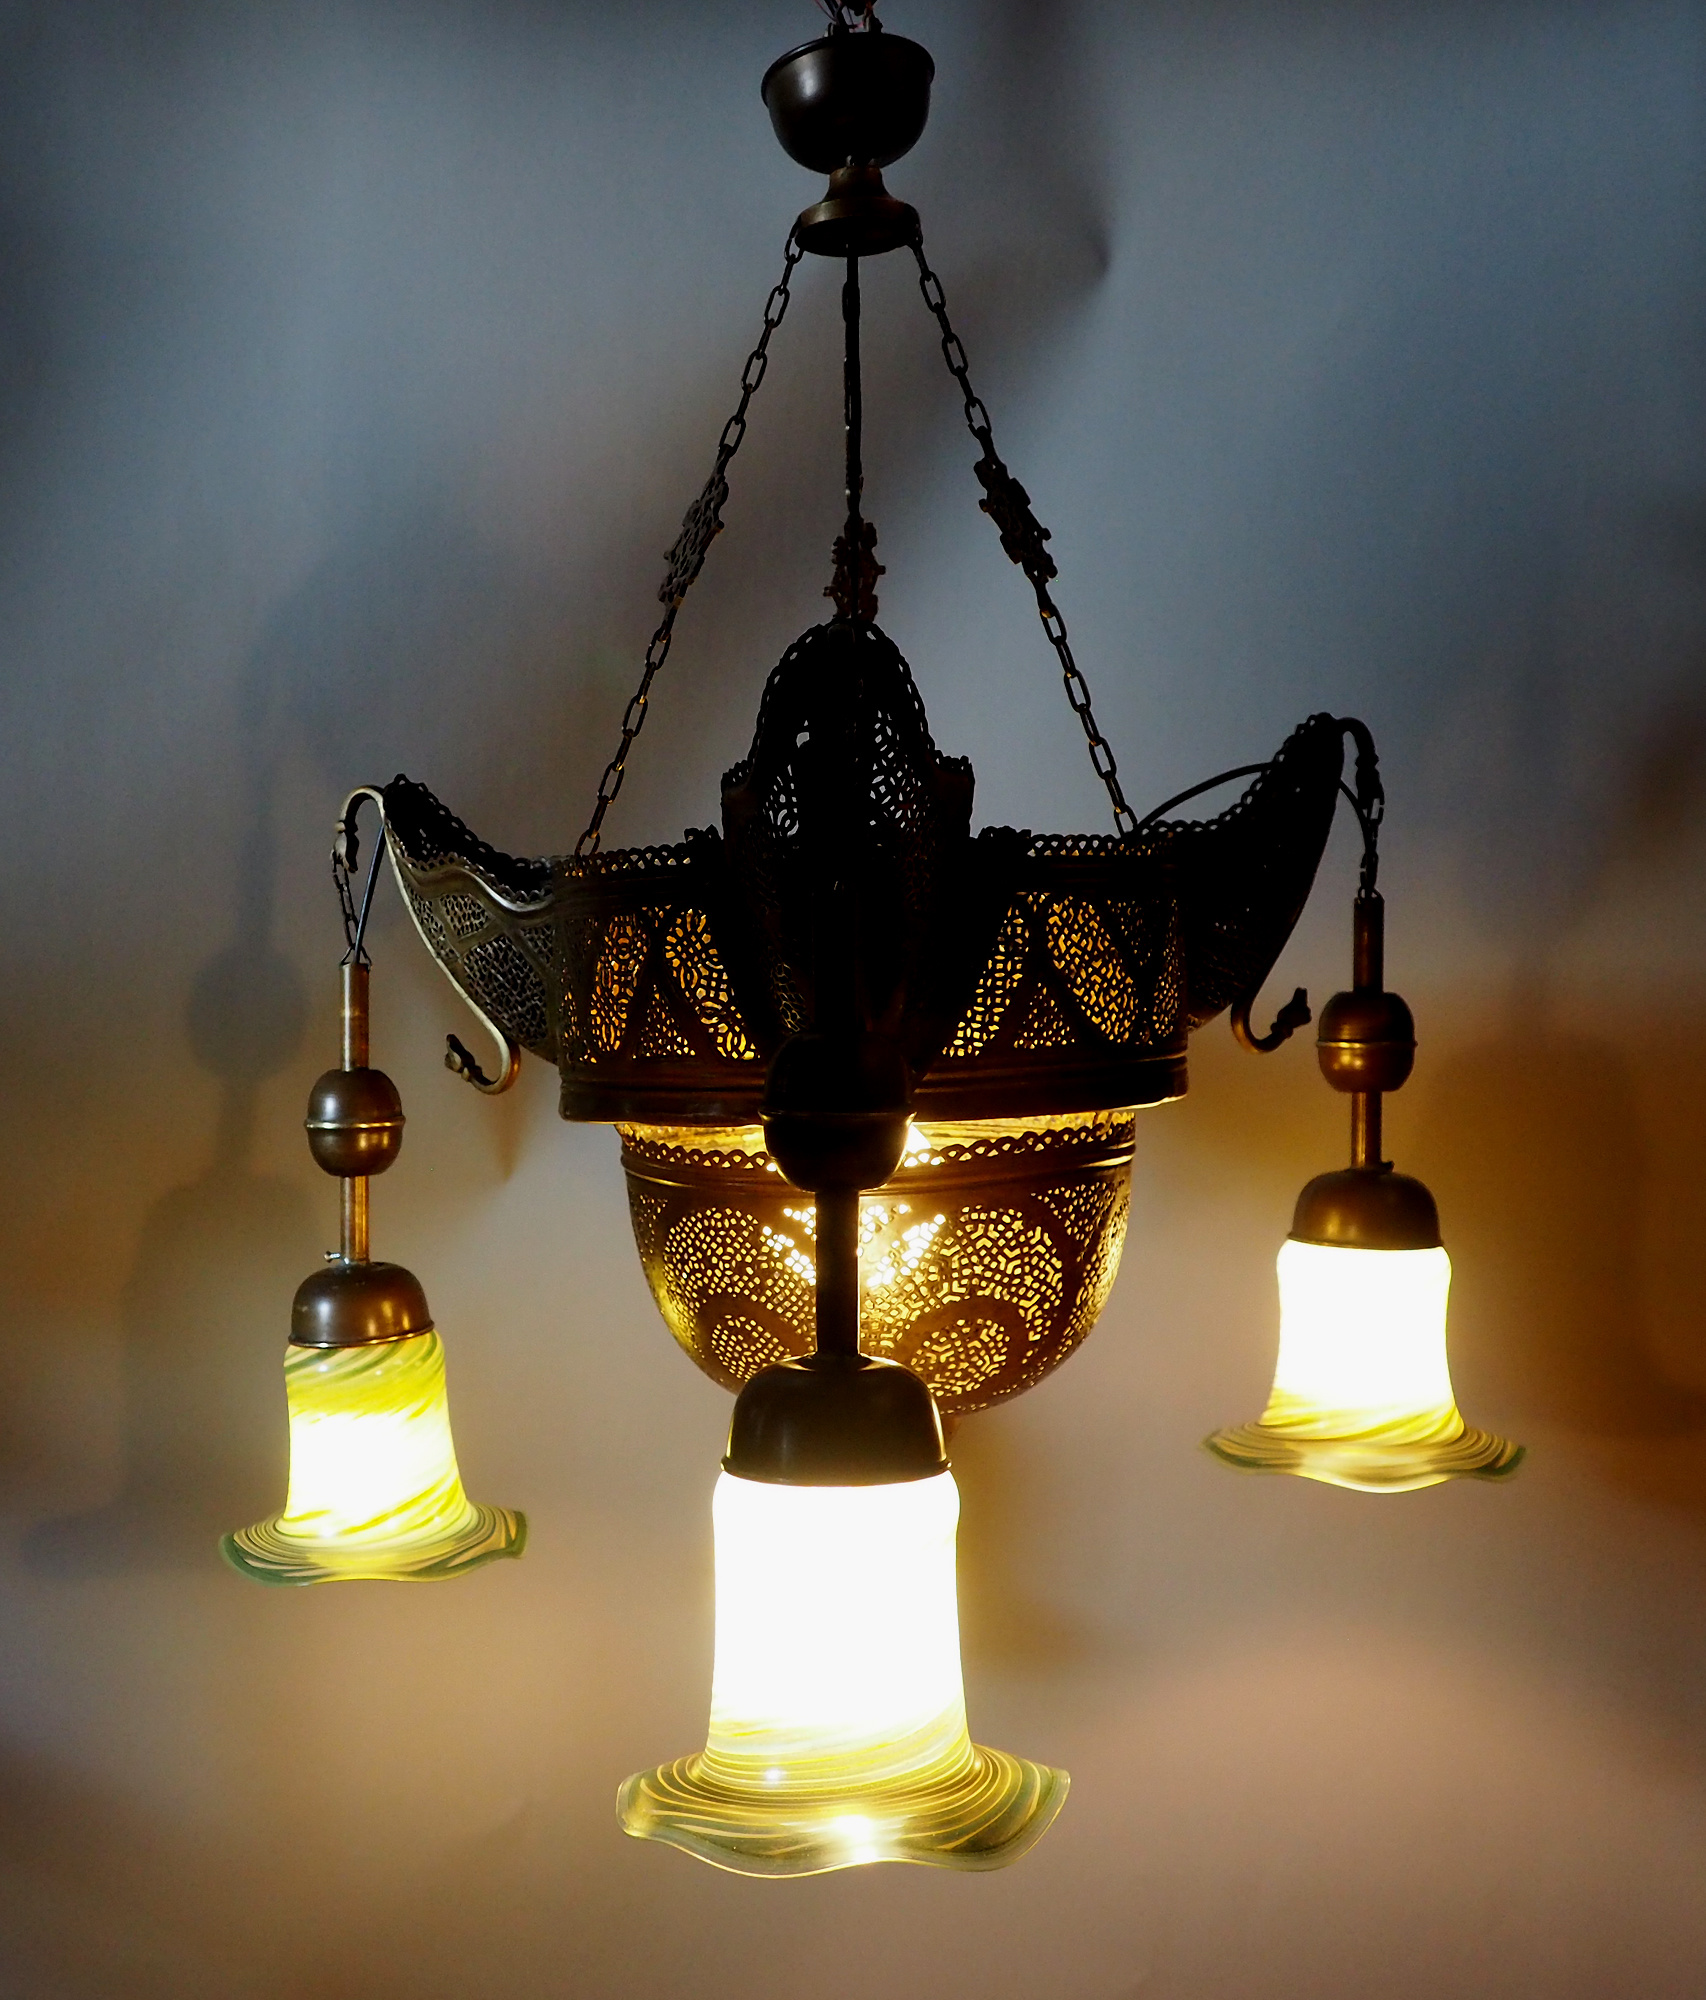 Antique Egyptian Morocco Middle Eastern / Islamic Brass Hanging Mosque Lamp Ceiling lamp